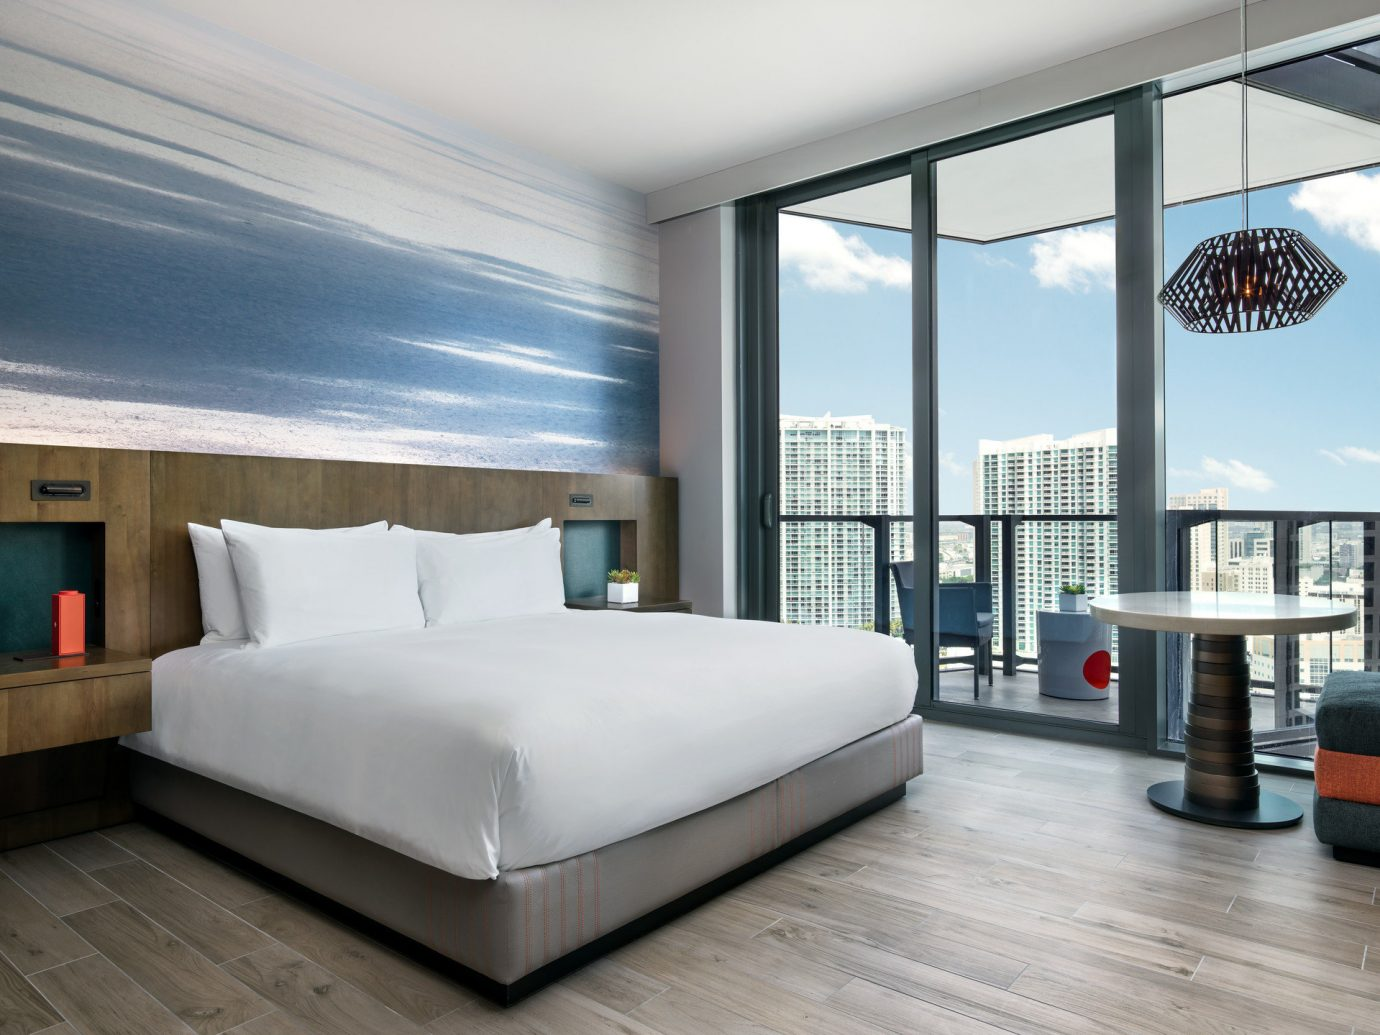 Balcony bed Bedroom Boutique chic city views clean contemporary Hip Hotels Luxury Modern Style + Design stylish trendy view windows floor indoor room property window furniture living room interior design condominium home real estate Design estate window covering apartment